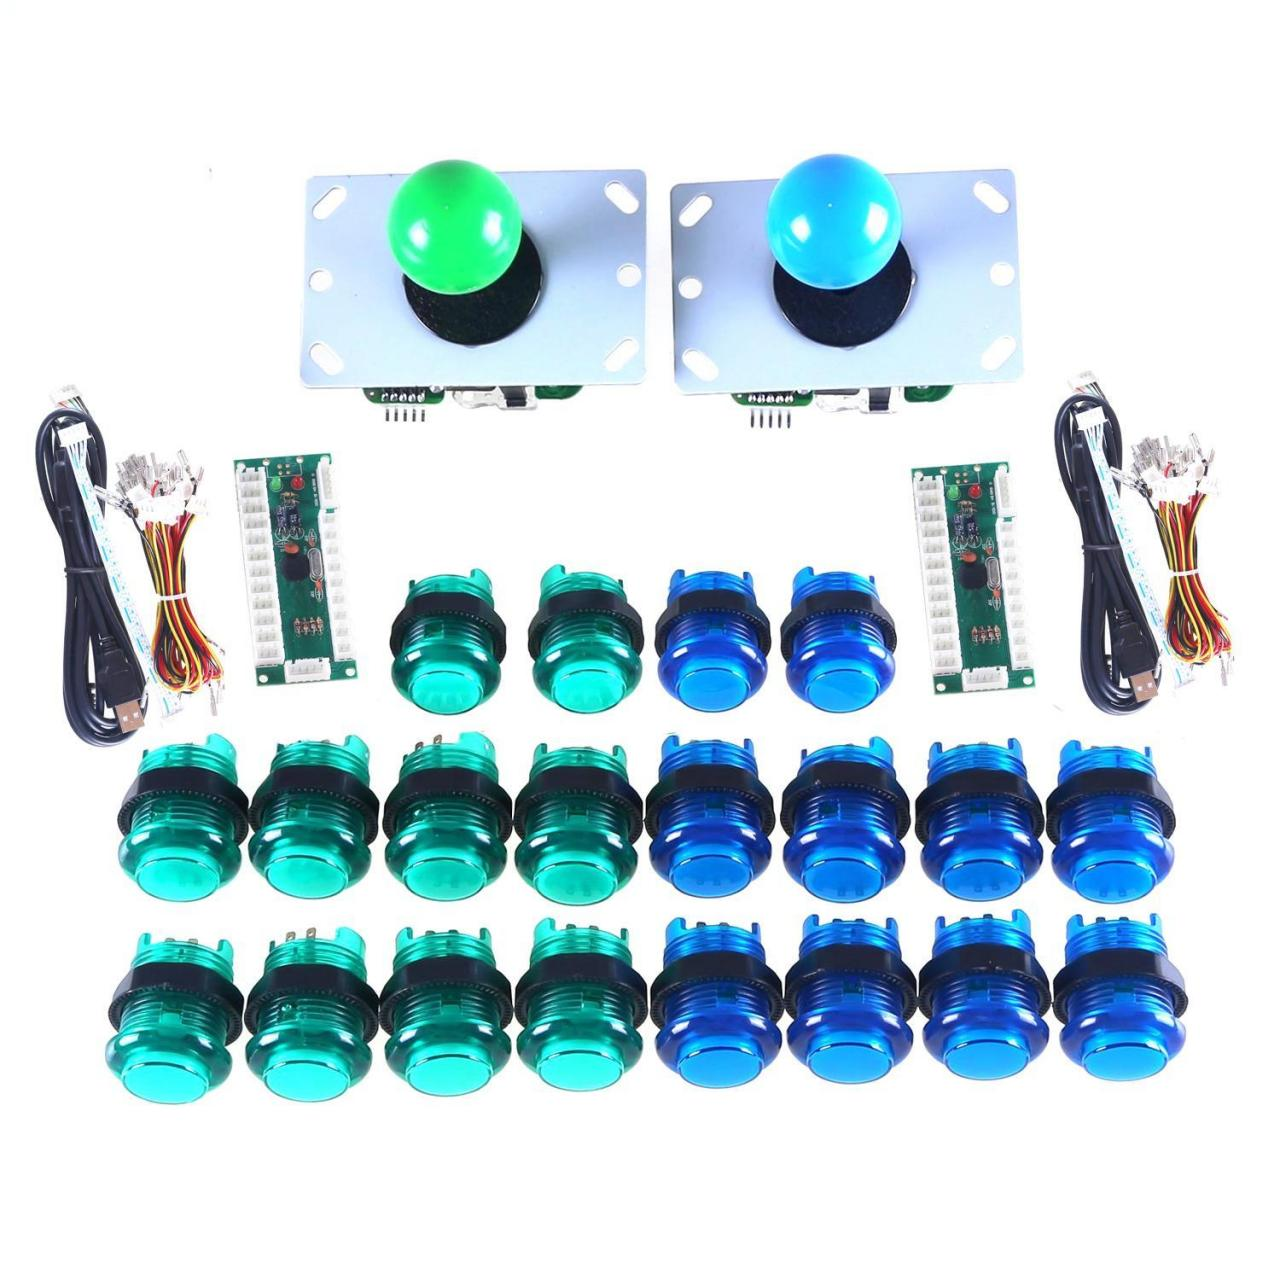 Buy cheap Blue + Green Arcade Button and Joystick Zero Delay Kits from wholesalers